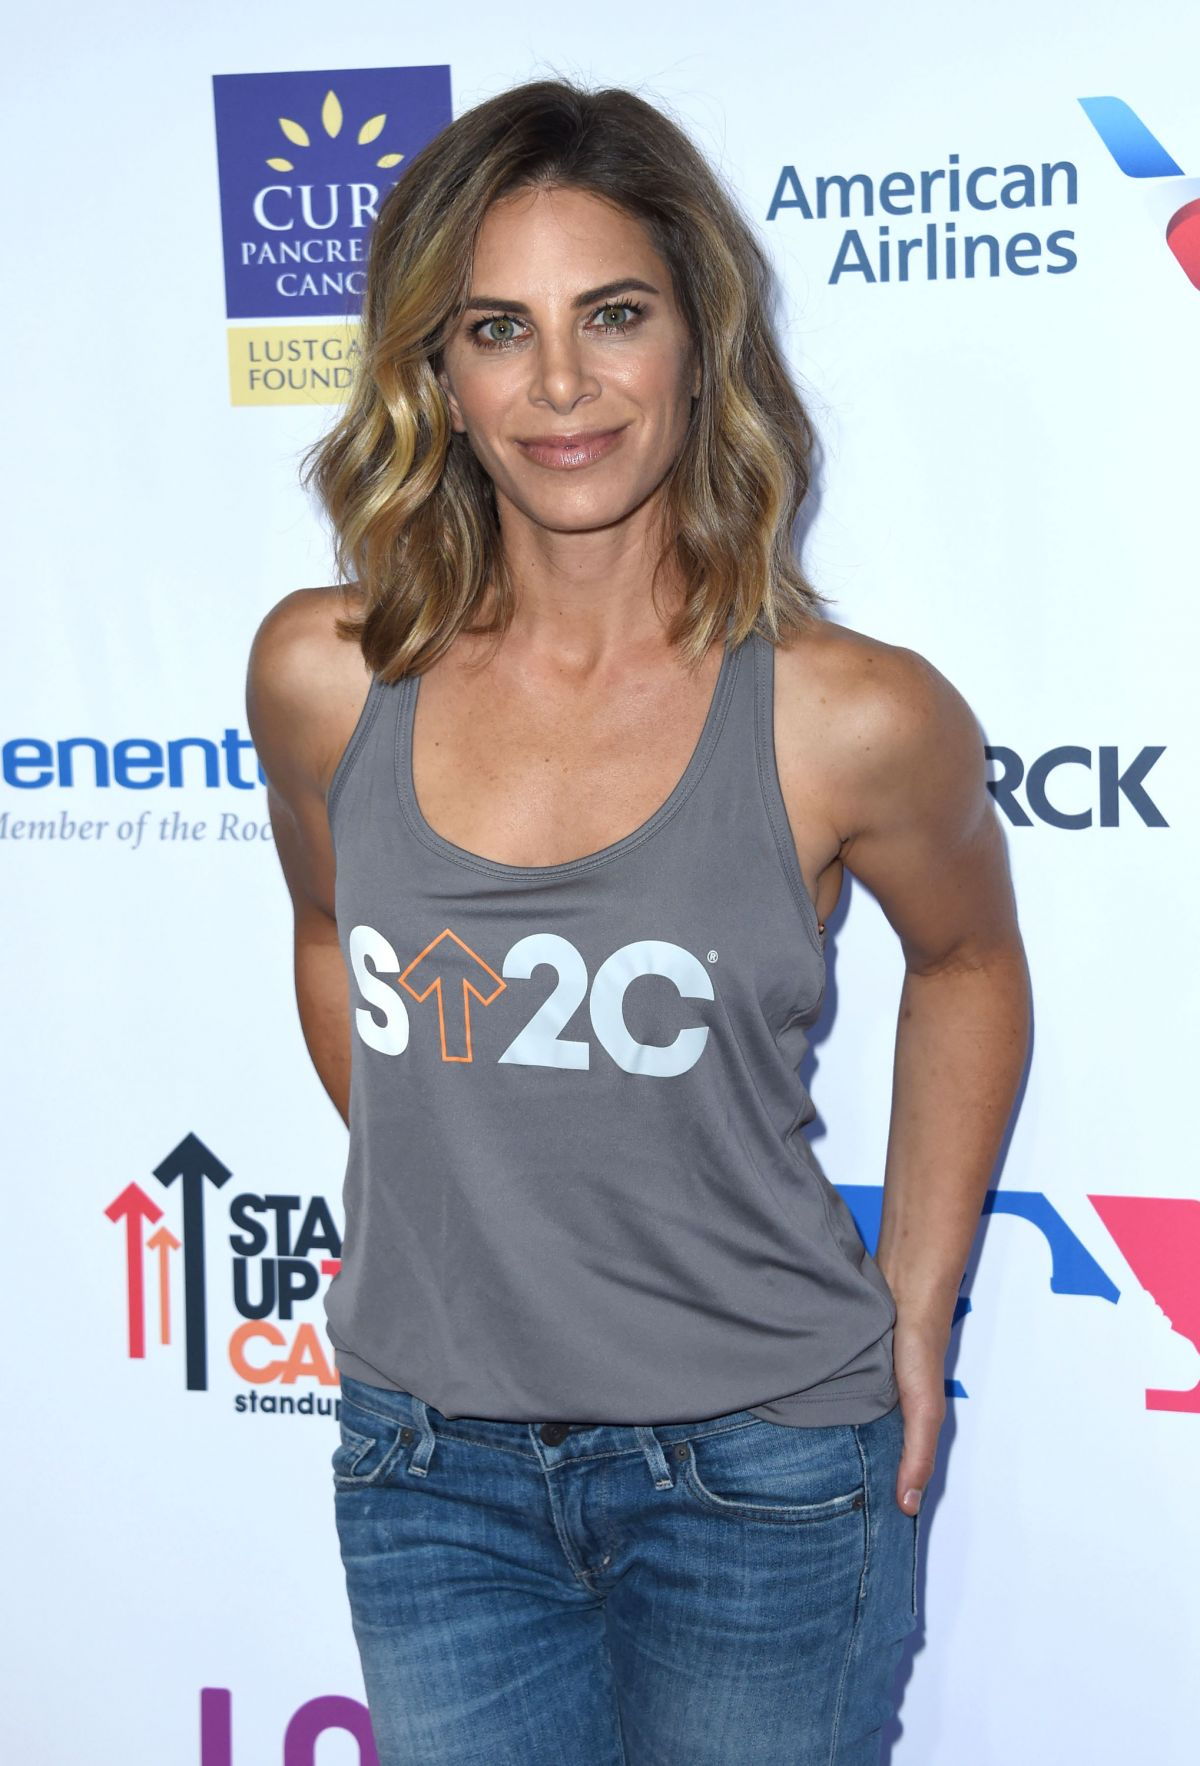 JILLIAN MICHAELS at 5th Biennial Stand Up To Cancer in Los Angeles 09/09/2016